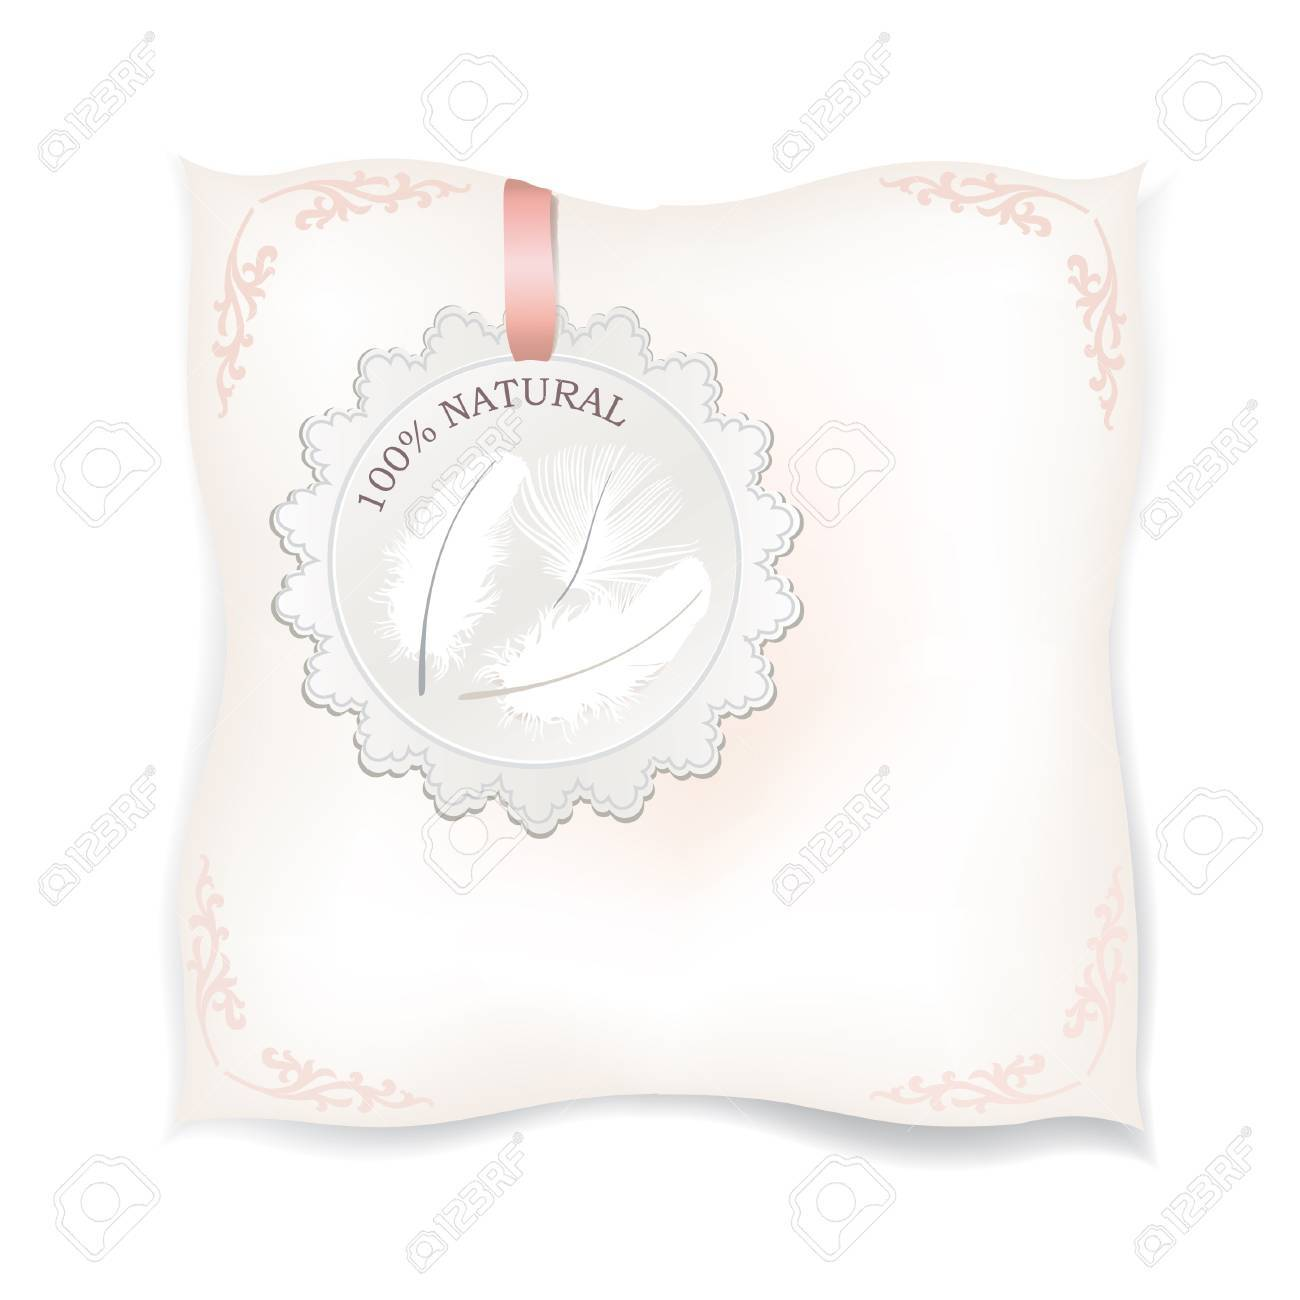 White pillow isolated  Natural down label  Natural product label  Feather Vector illustration Stock Vector - 20912589